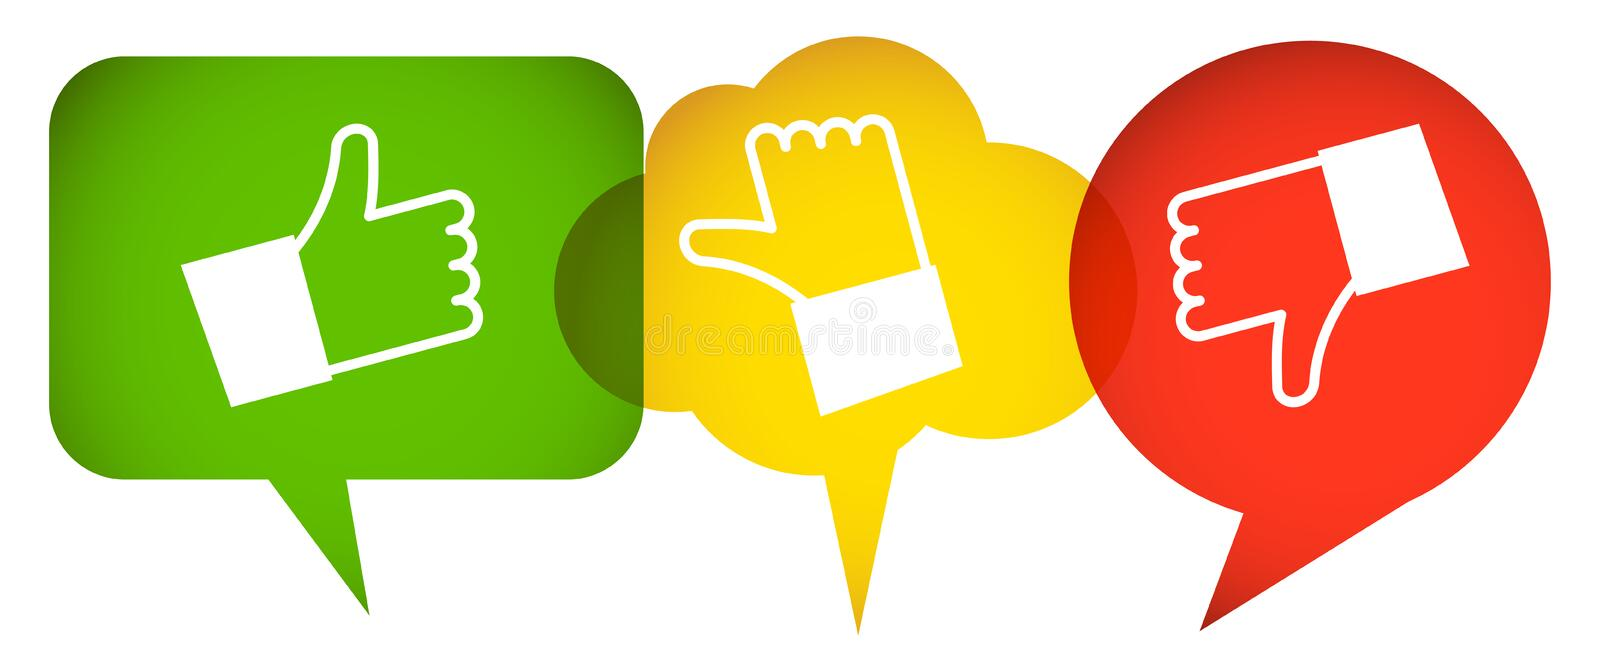 speech bubbles with thumbs up and down royalty free illustration